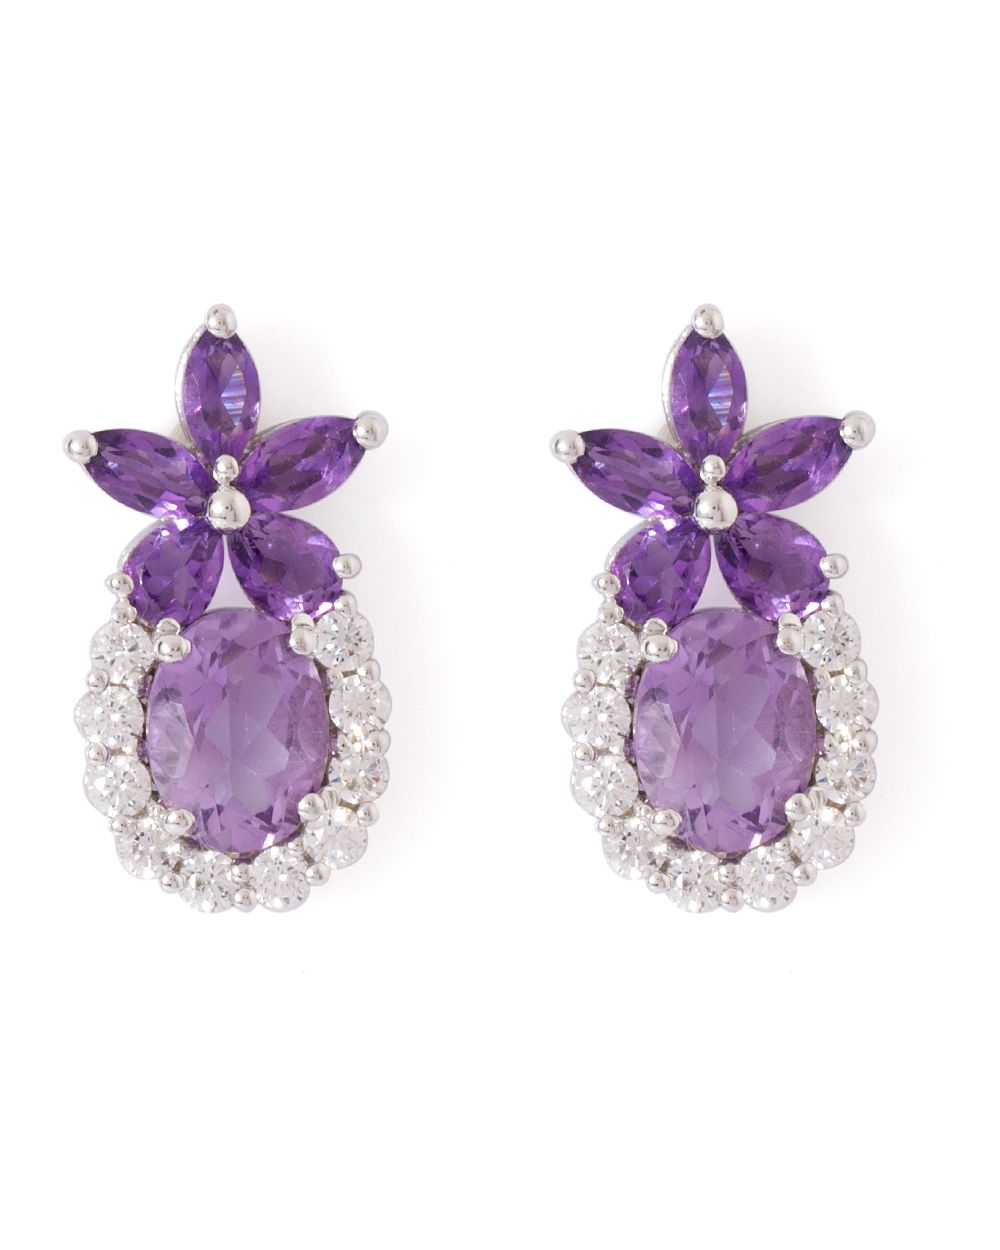 leah laura oval stone earrings amethyst charming products